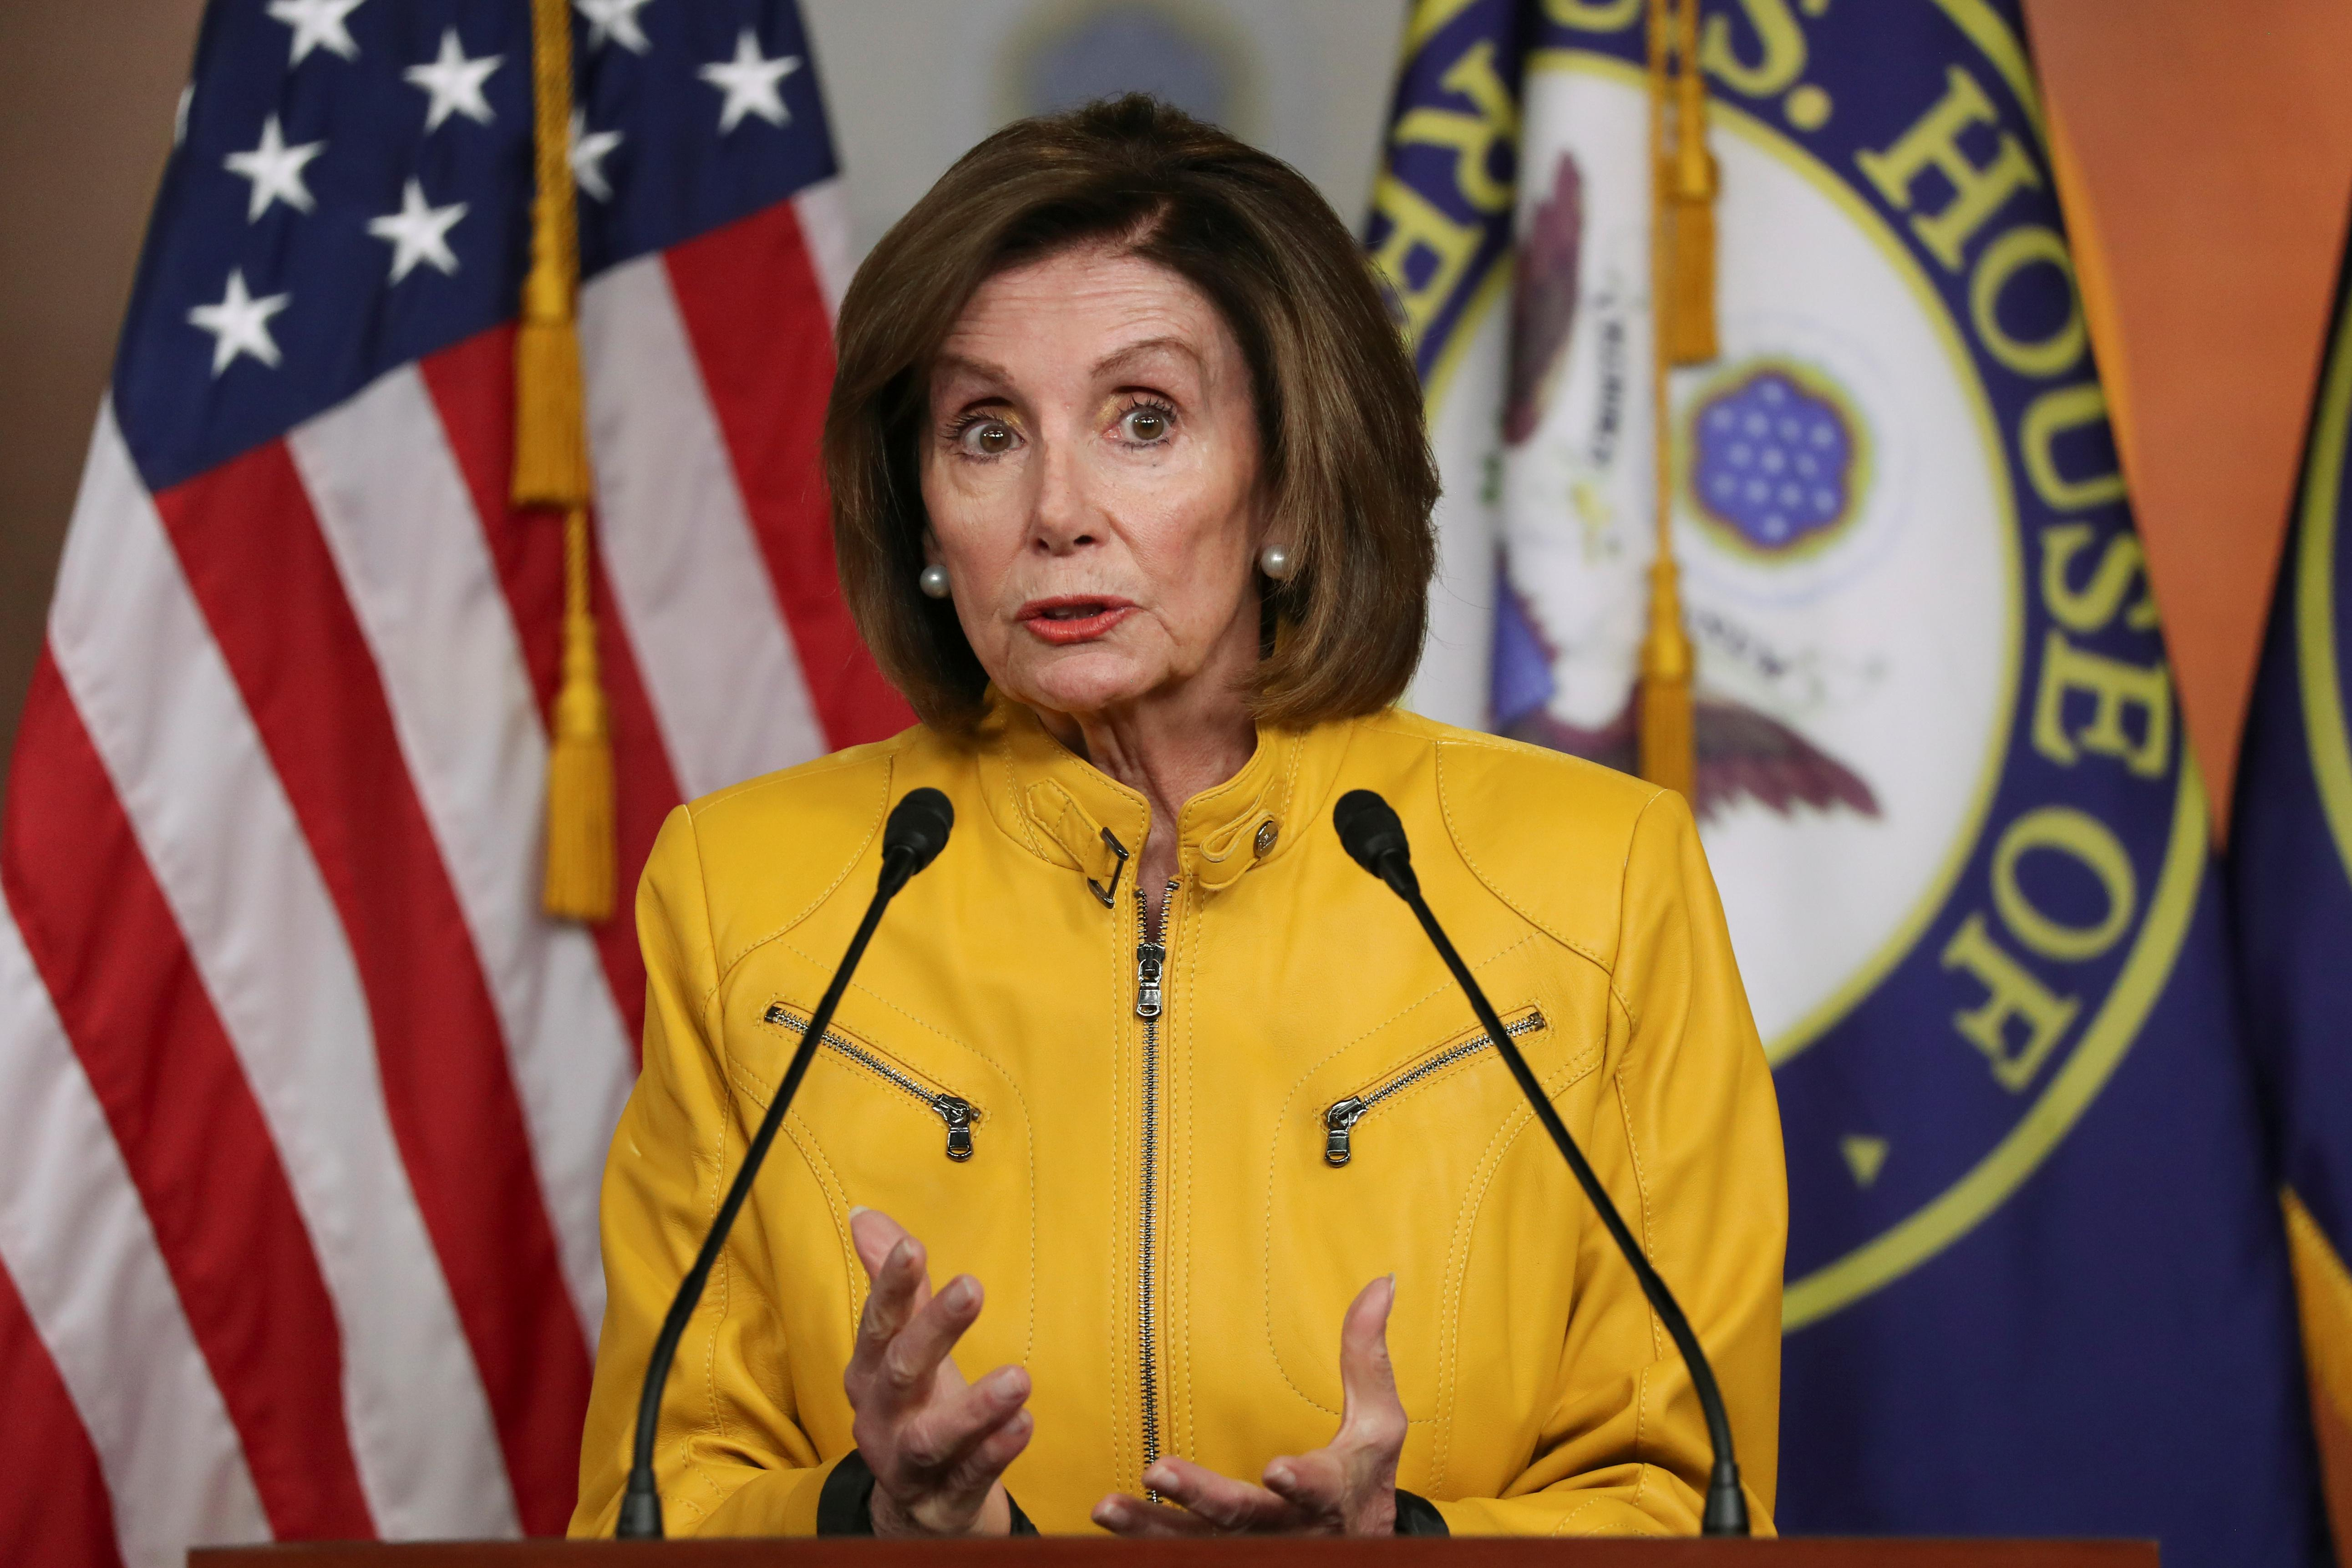 U.S. House Speaker Pelosi on Trump: 'If the goods are there, you must impeach'